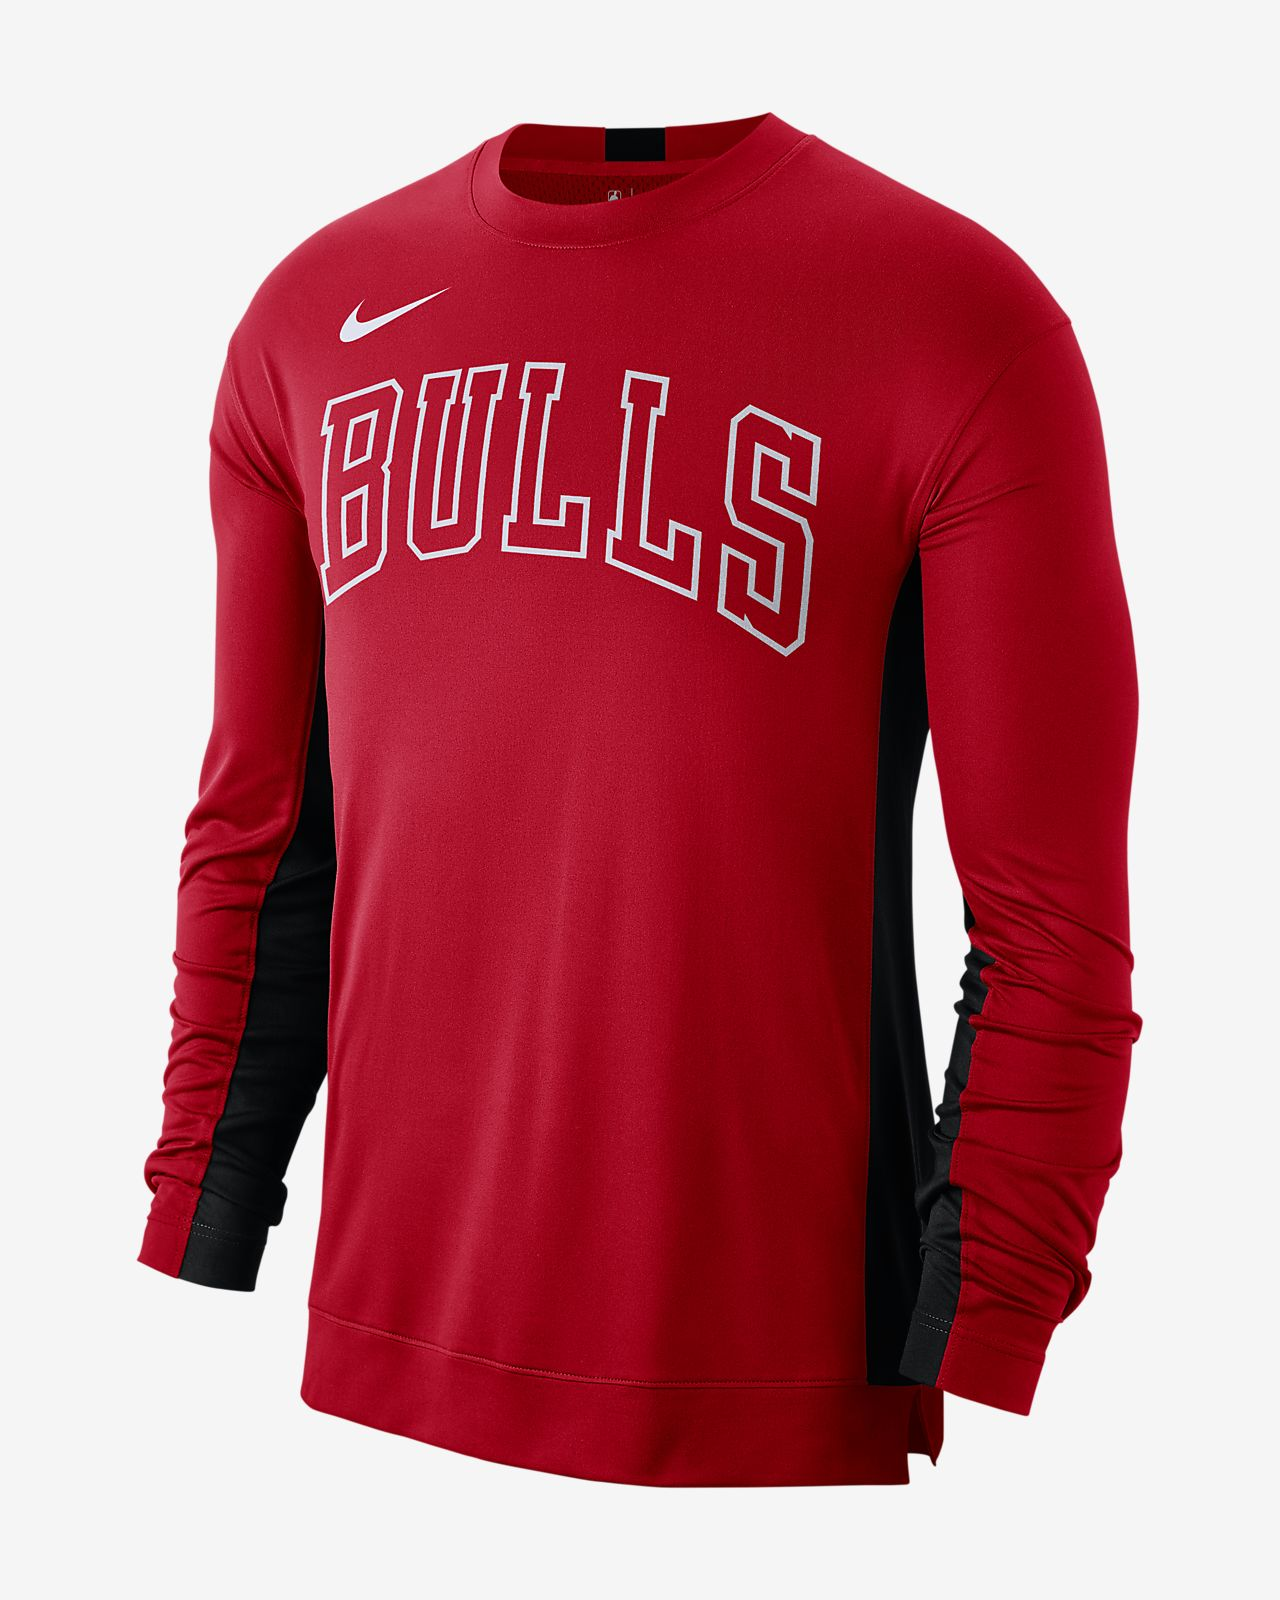 Chicago Bulls Nike Dri FIT Men's NBA Shooting Top